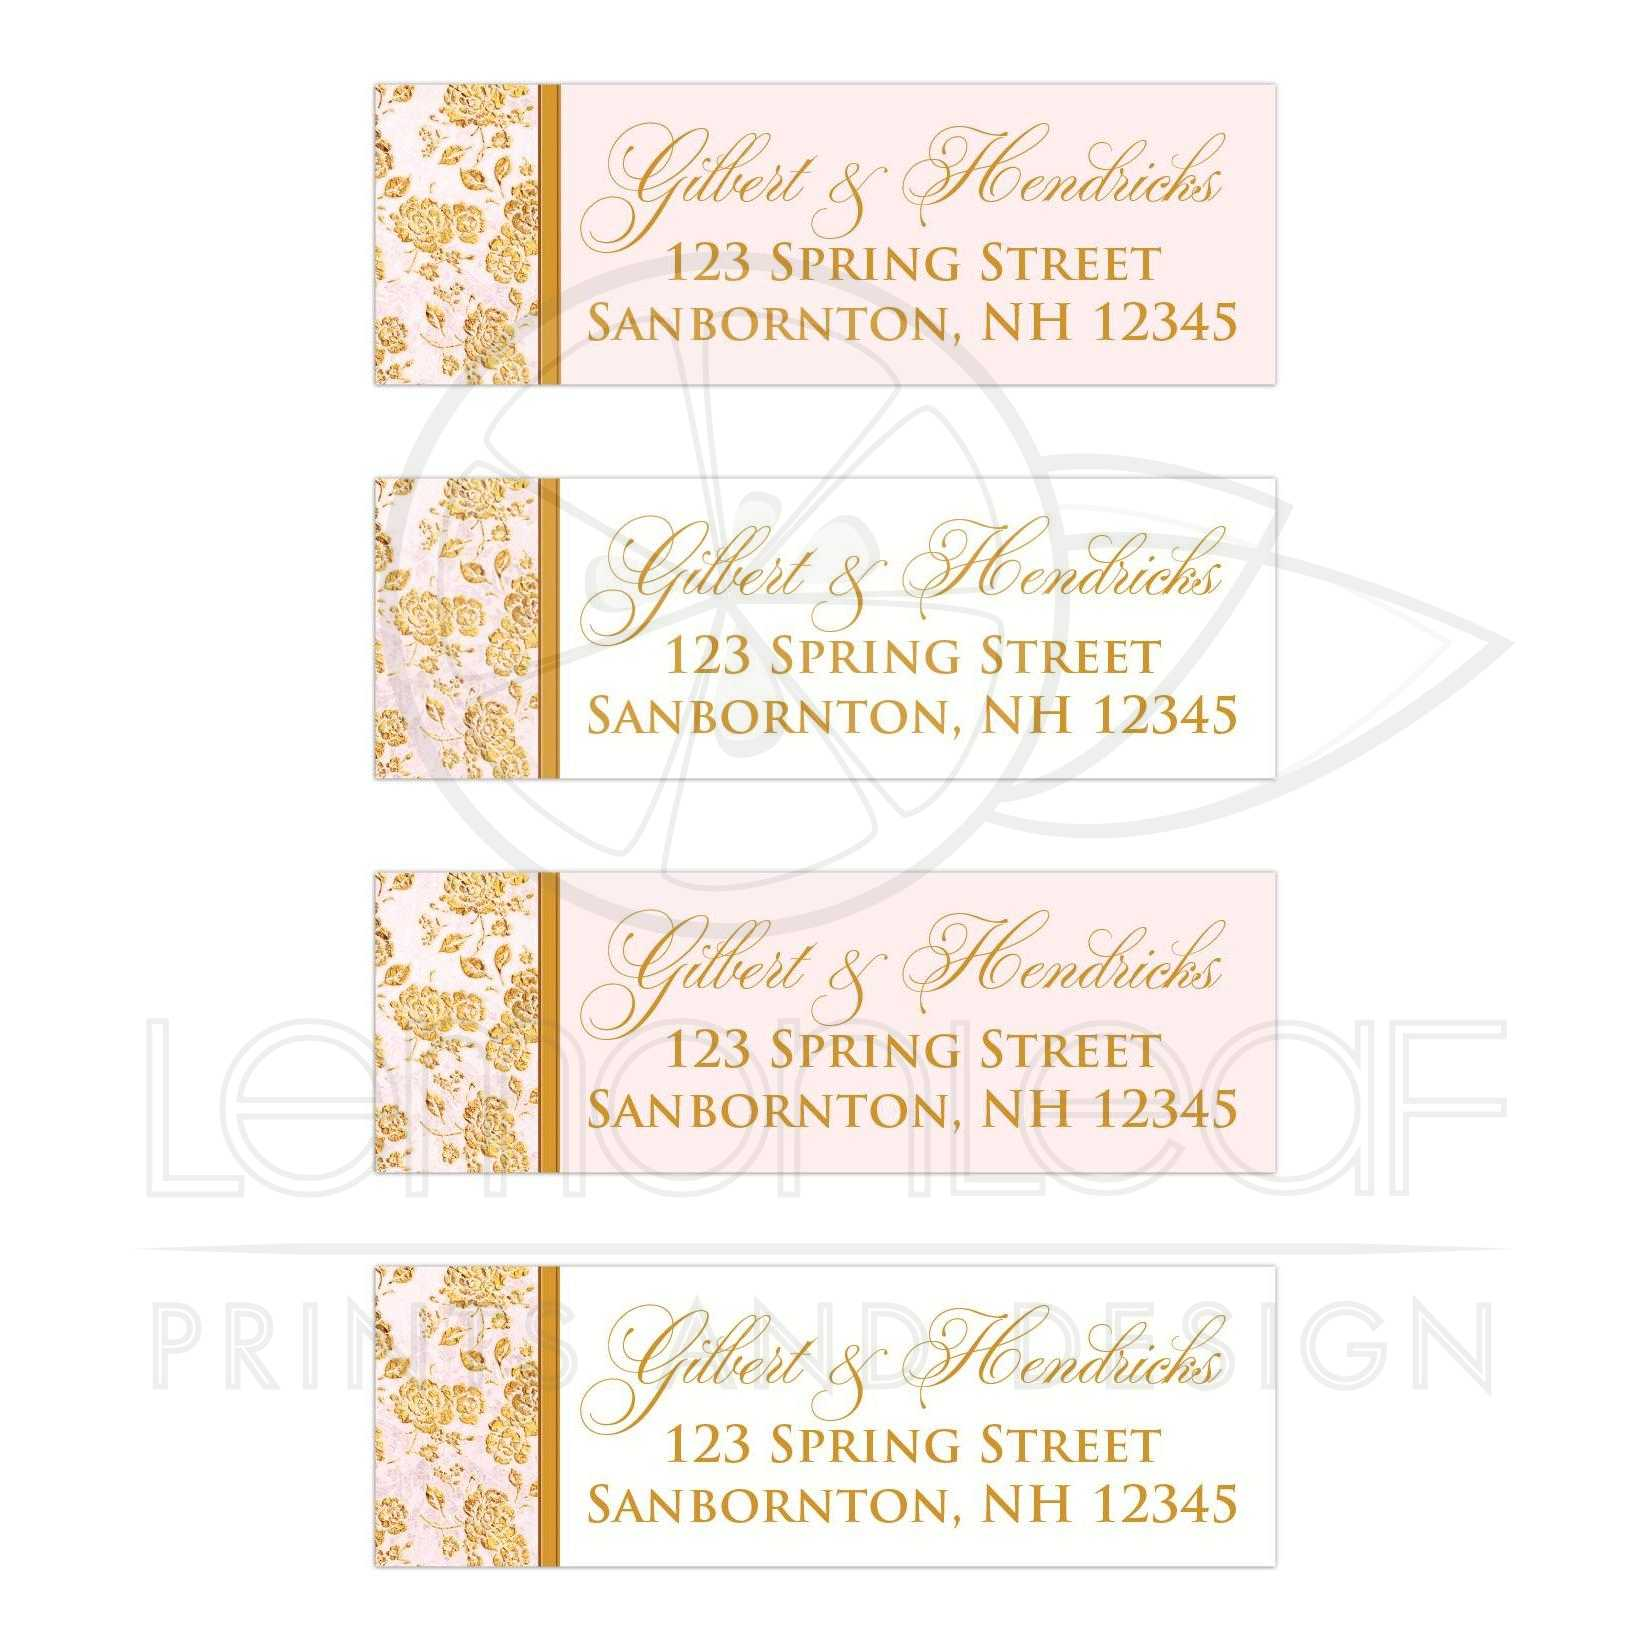 Manly G Roses Or Peony Floral Wedding Returnaddress Mailing Labels Address Labels Vintage Floral Blush G Leaf Wedding Address Labels Online Wedding Address Labels Clear Vintage Blush Ivory wedding Wedding Address Labels